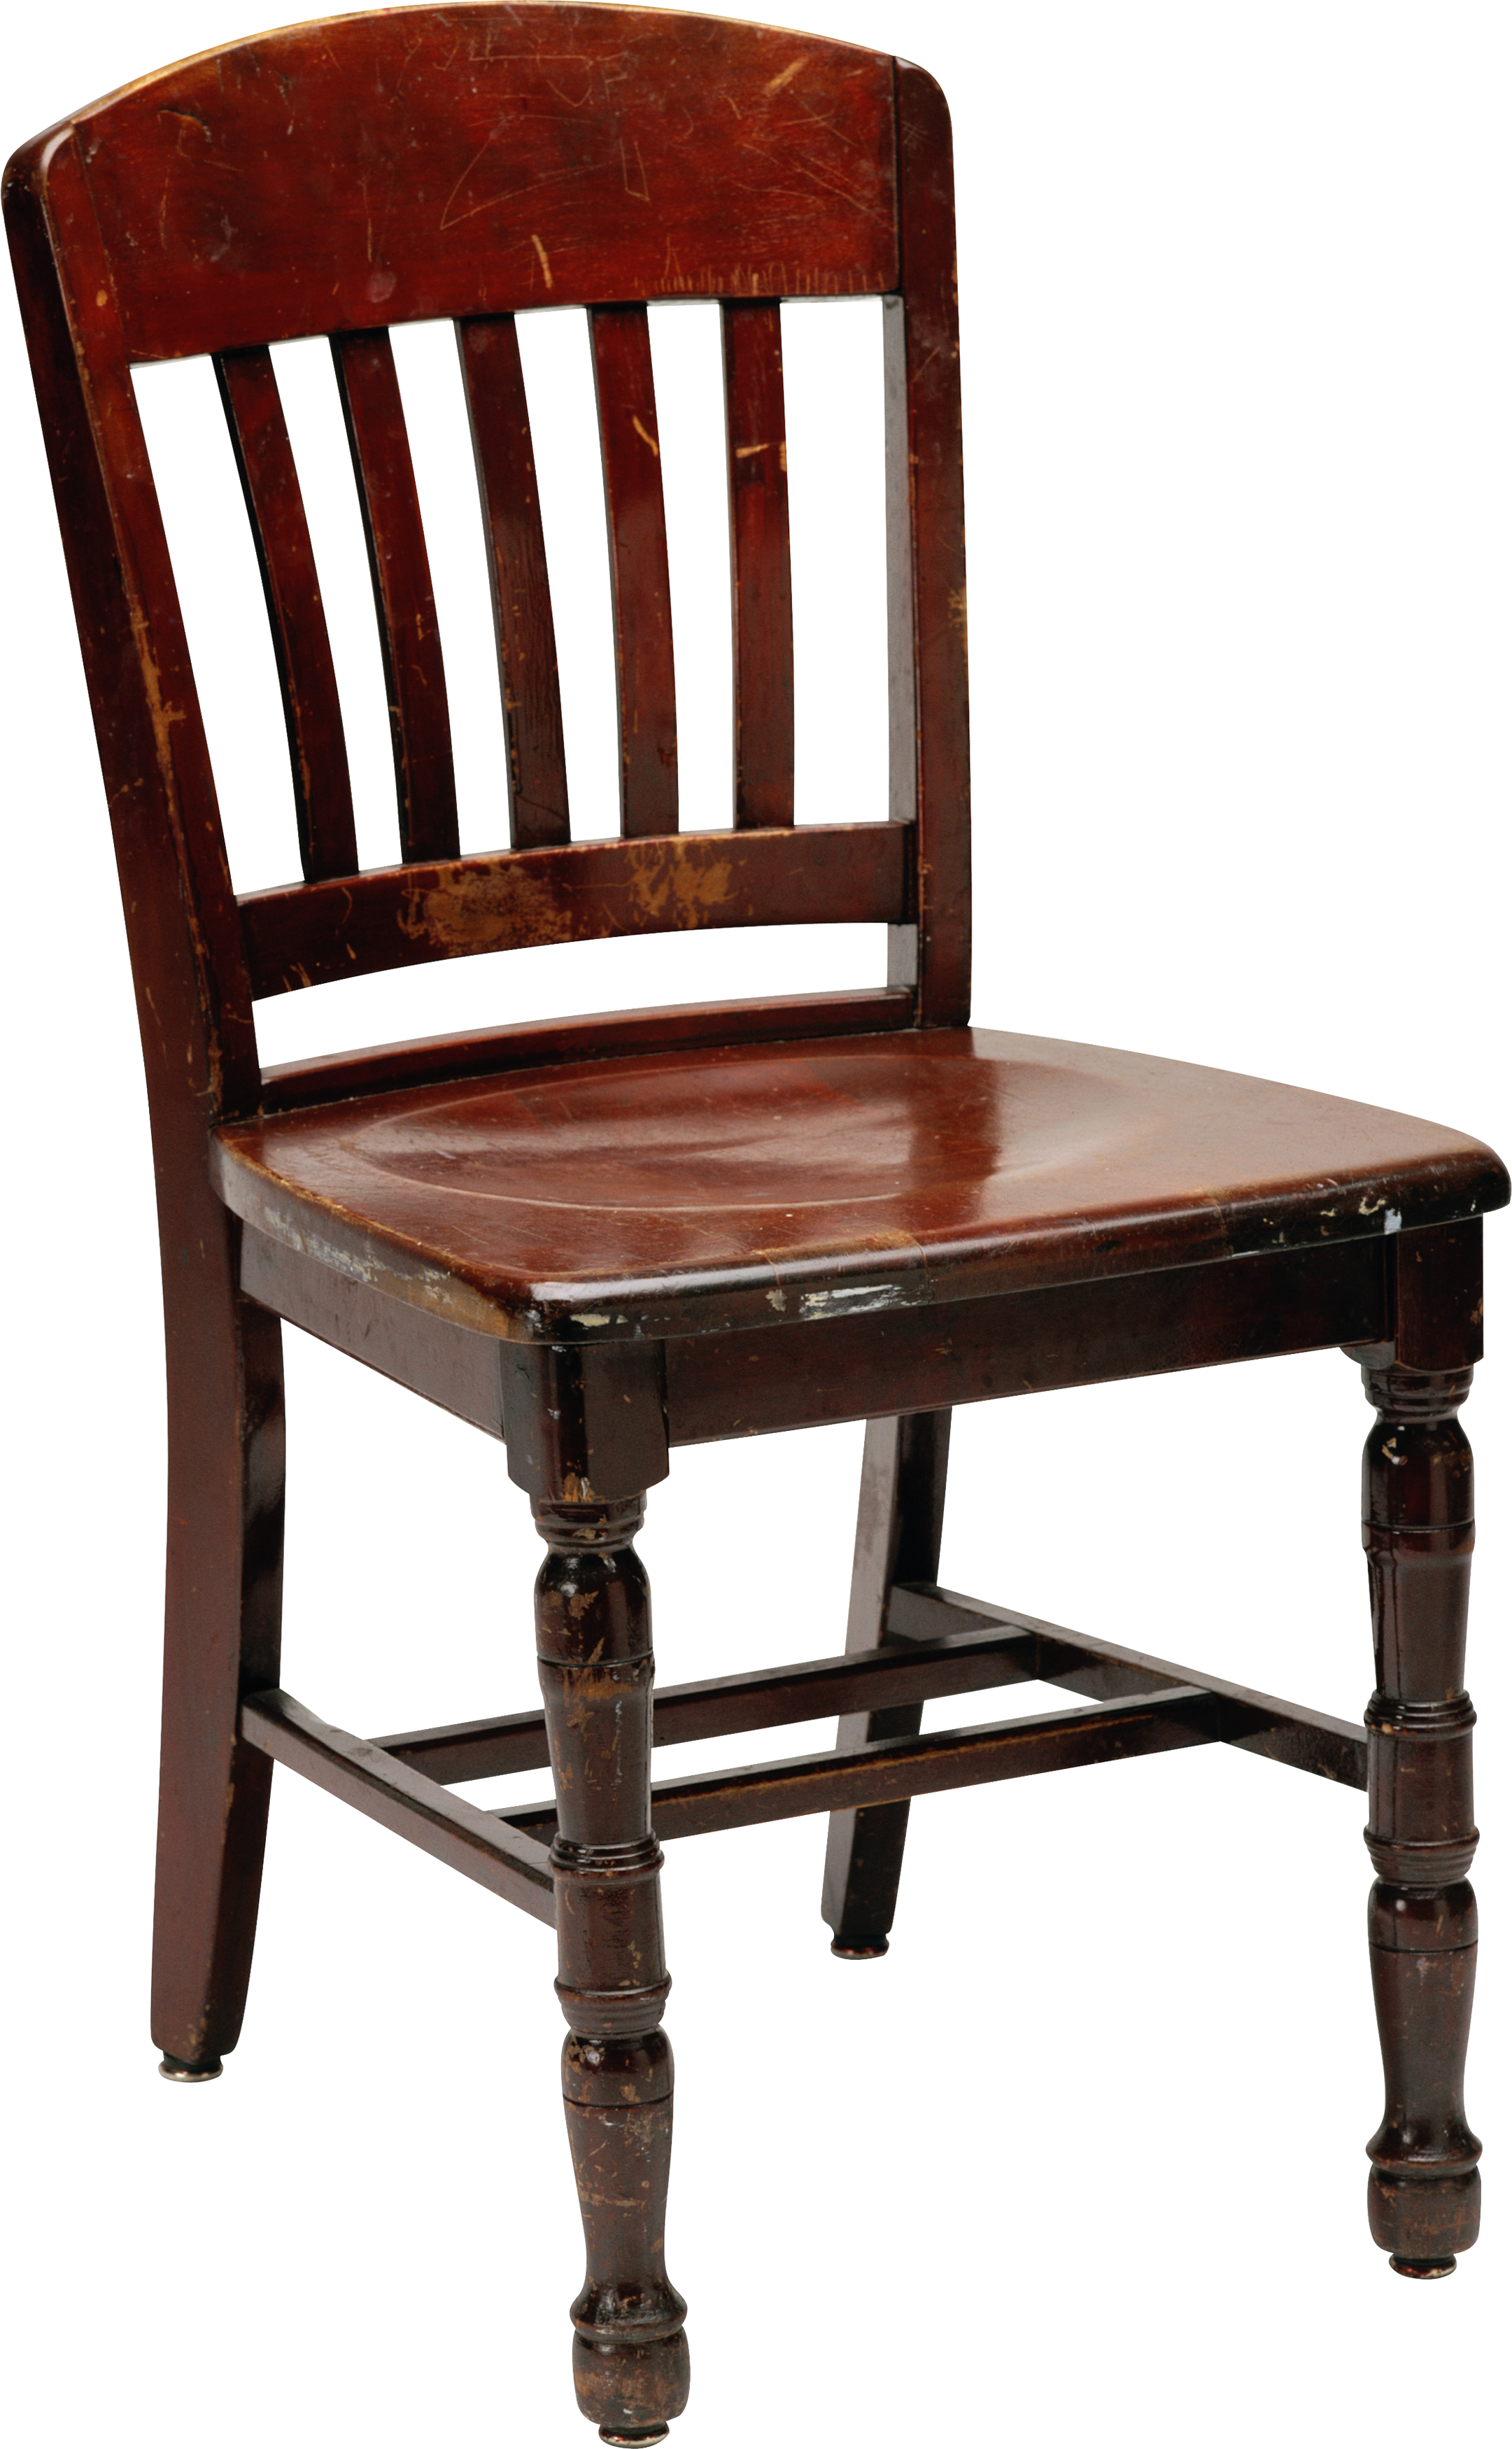 uploads chair chair PNG6893 24